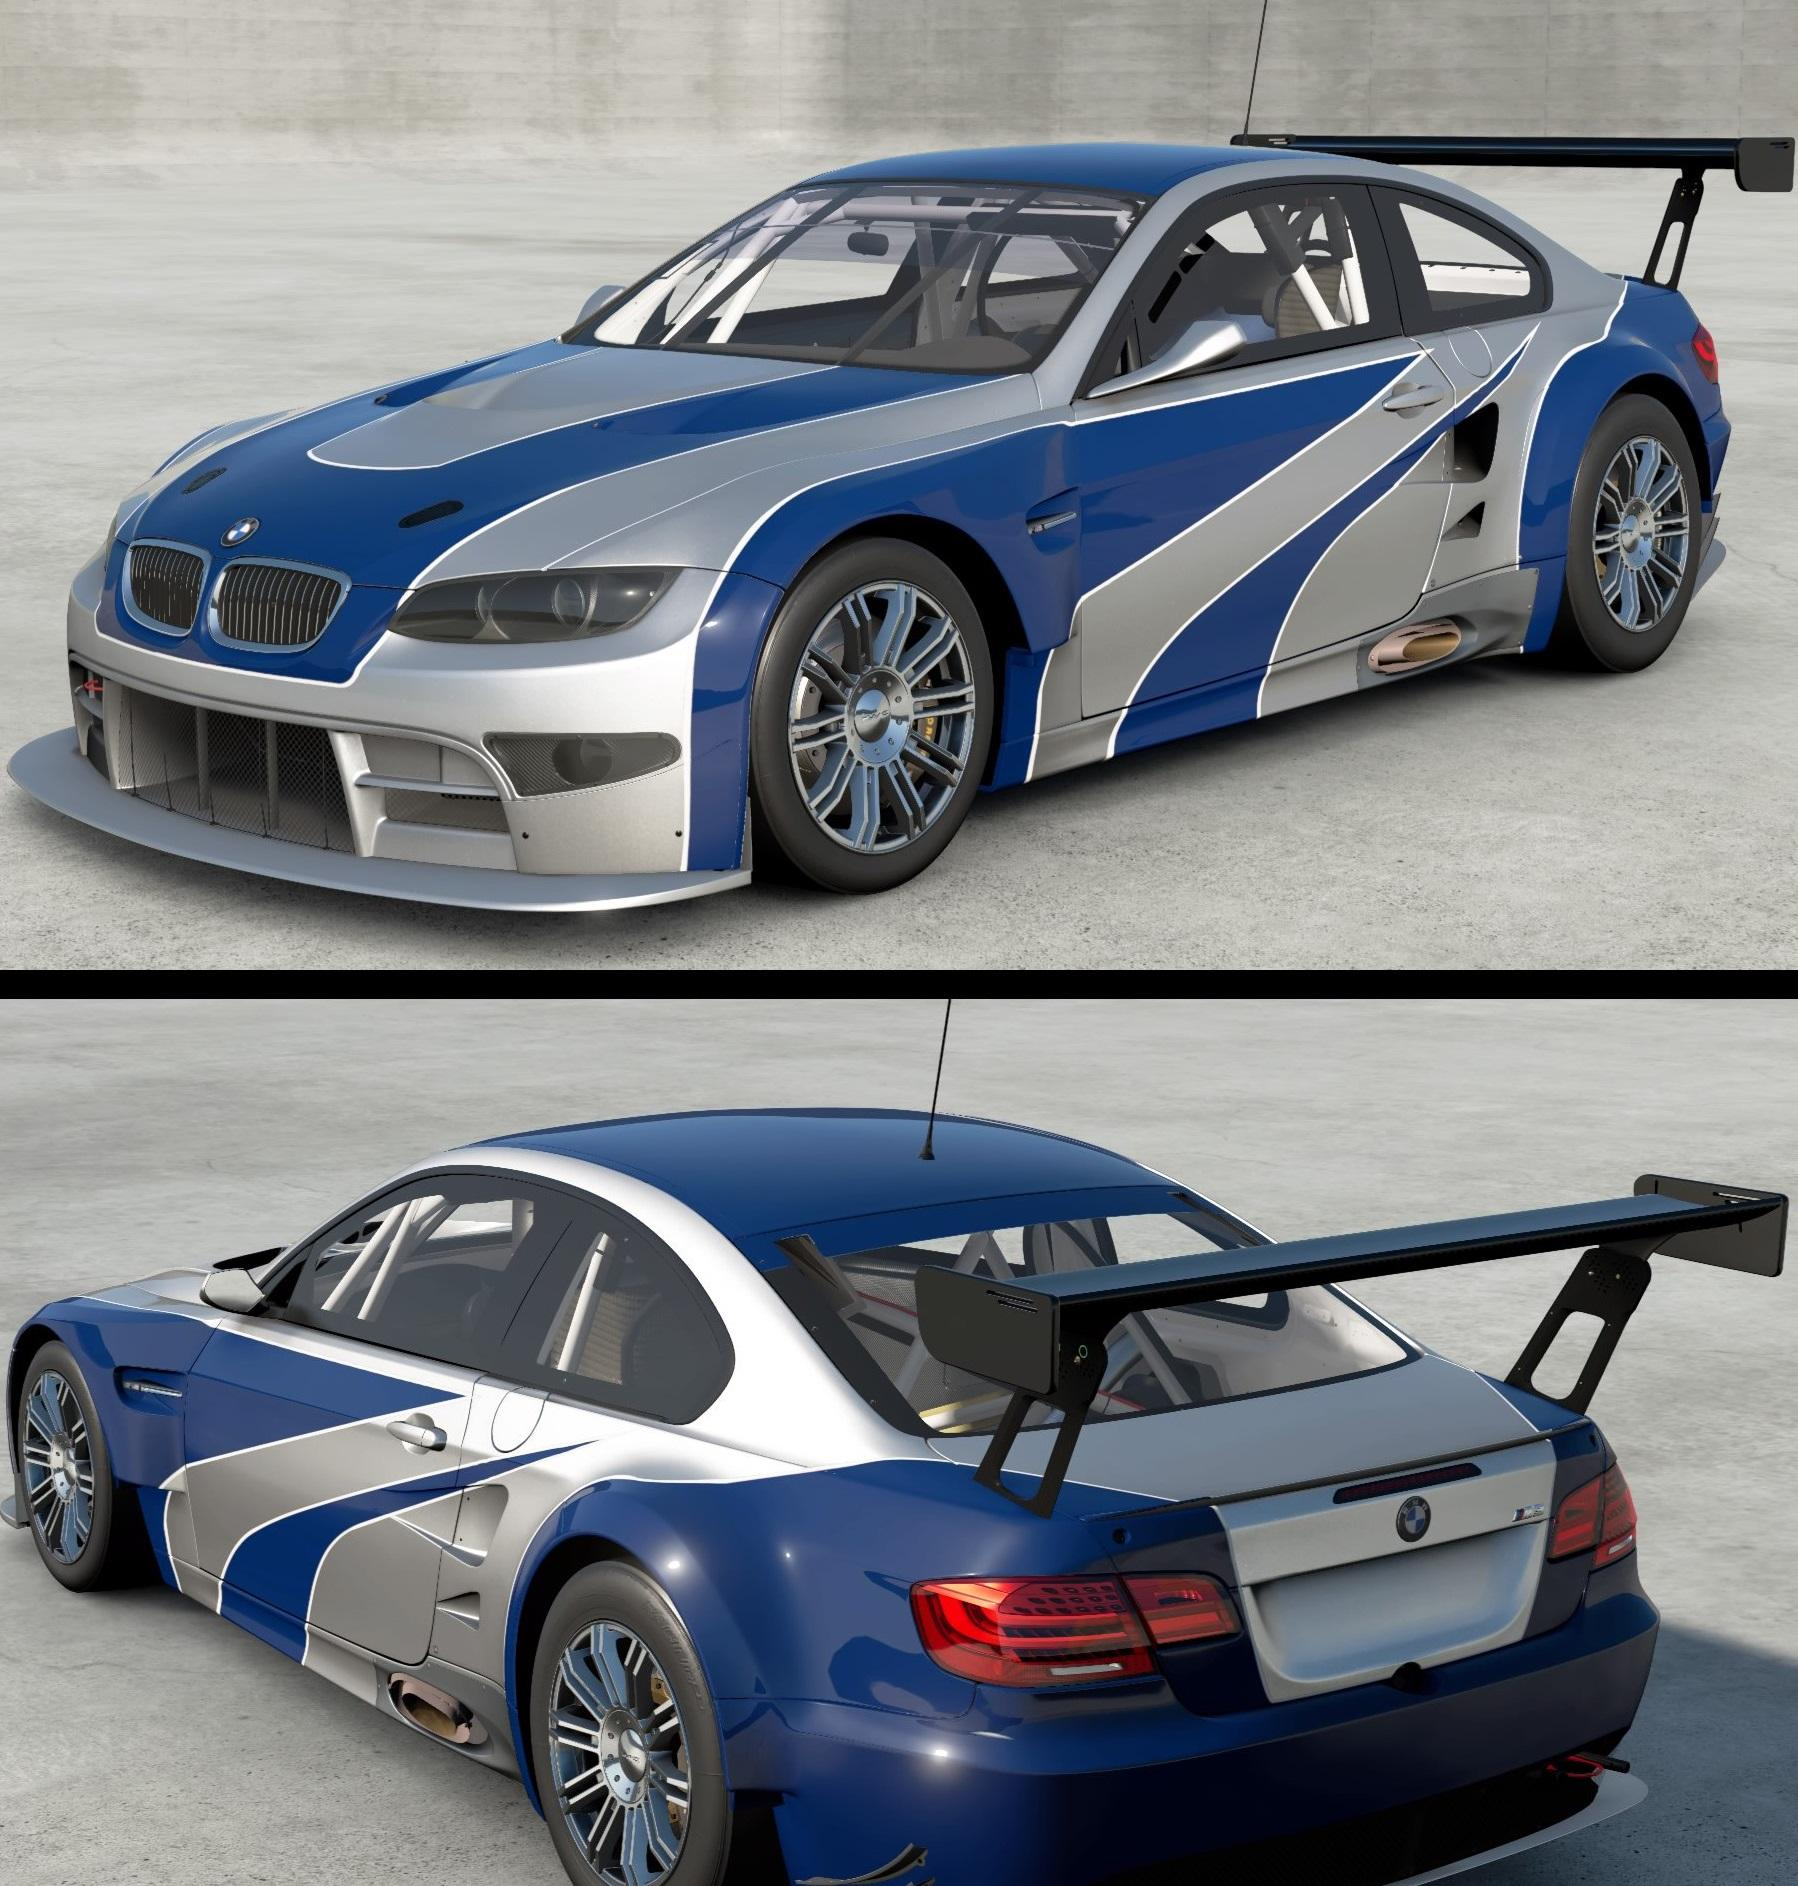 Topworldauto Photos Of Bmw M3 Gtr Photo Galleries